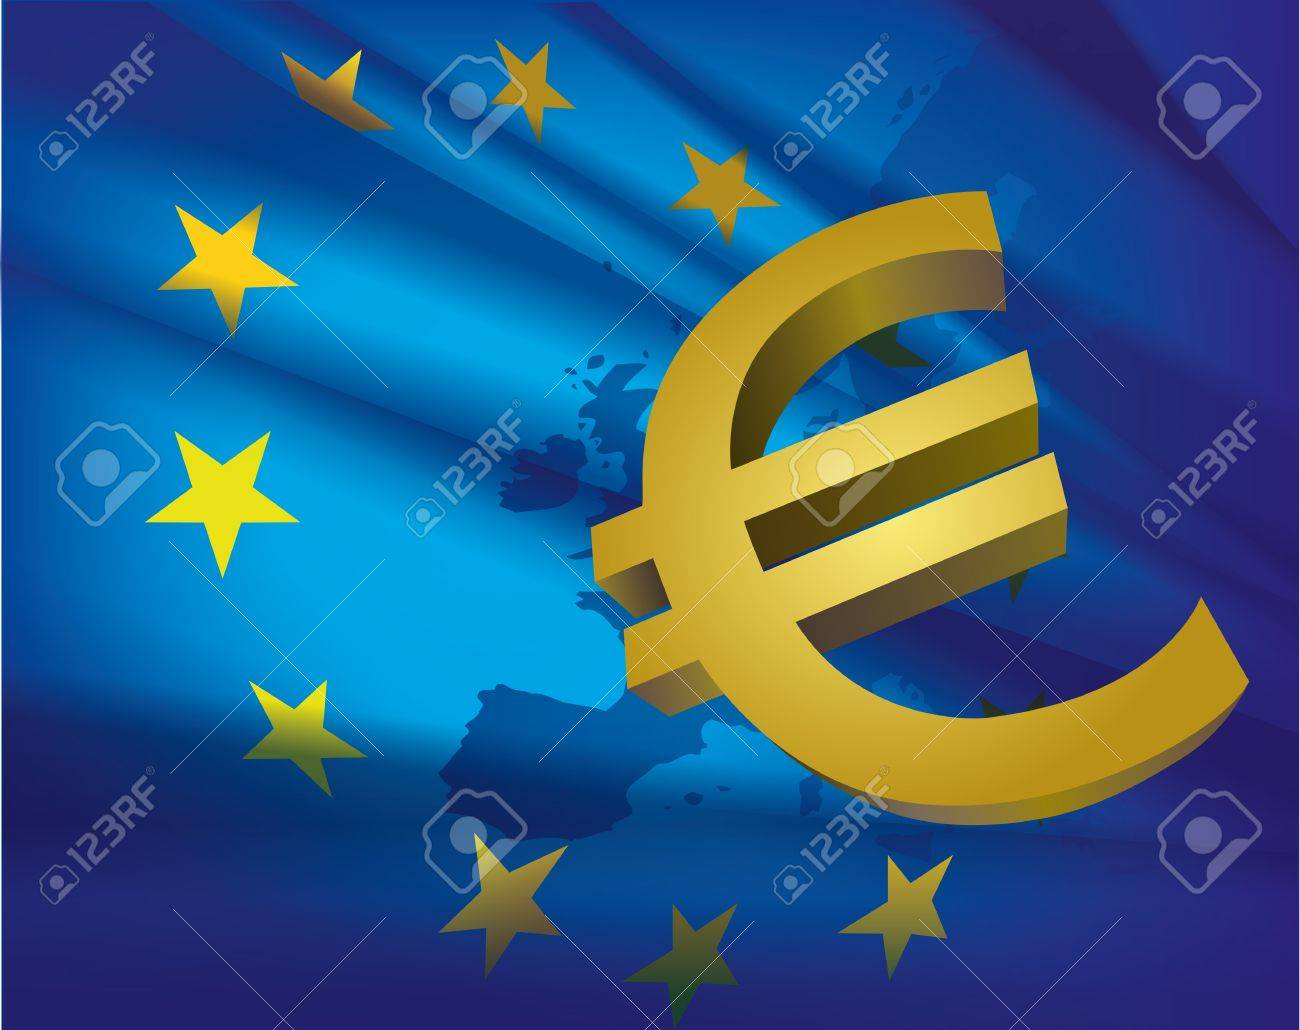 Europe map and flag and euro - beautiful abstract blue collage background - 19140851